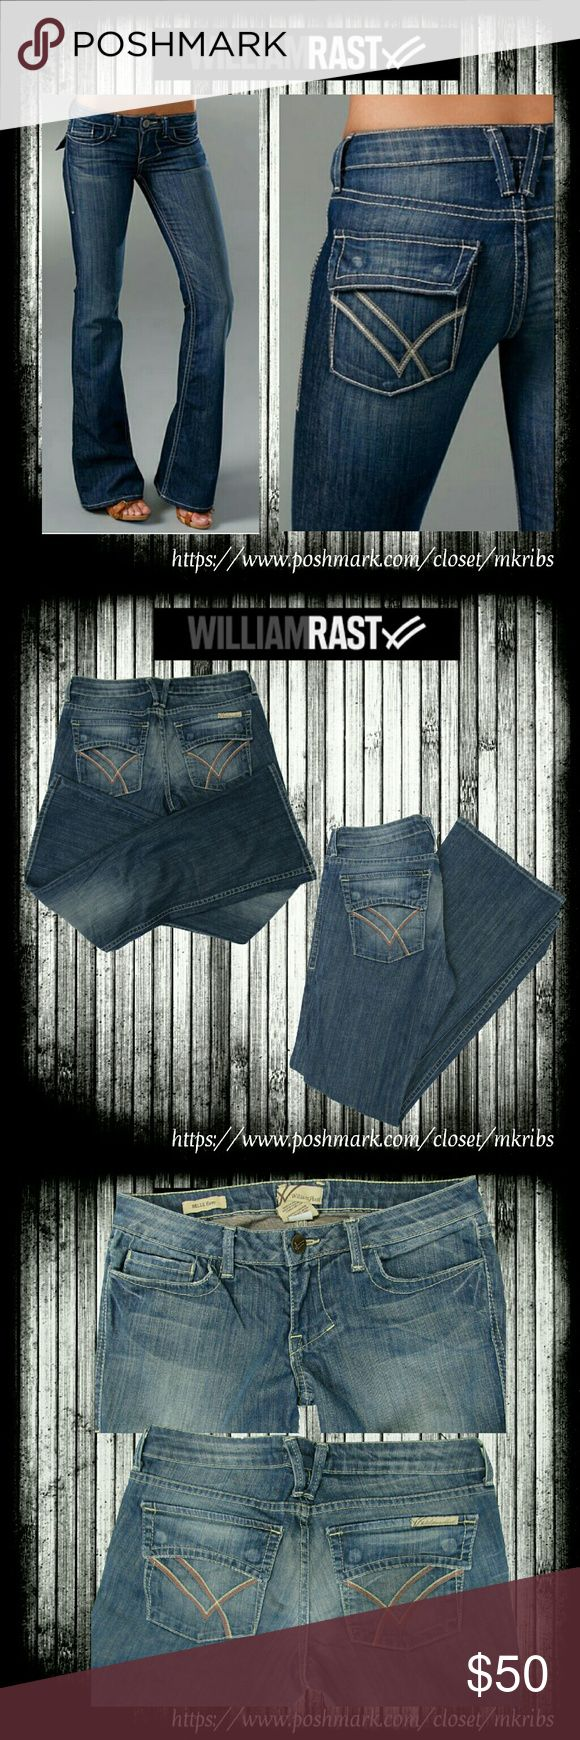 William Rast Belle Flair  jeans 28 x 34 Super flattering  William Rast Belle Flair flap pocket jeans with stretch. 1st photo is stock of exact style and color. All other photos are taken by me, 3rd photo appears lighter than actual color due to lighting. Excellent condition. 34 inch inseam. See other measurements and details above. NO TRADES PLEASE! OFFERS WELCOME THROUGH OFFER FEATURE ONLY PLEASE! William Rast Jeans Flare & Wide Leg